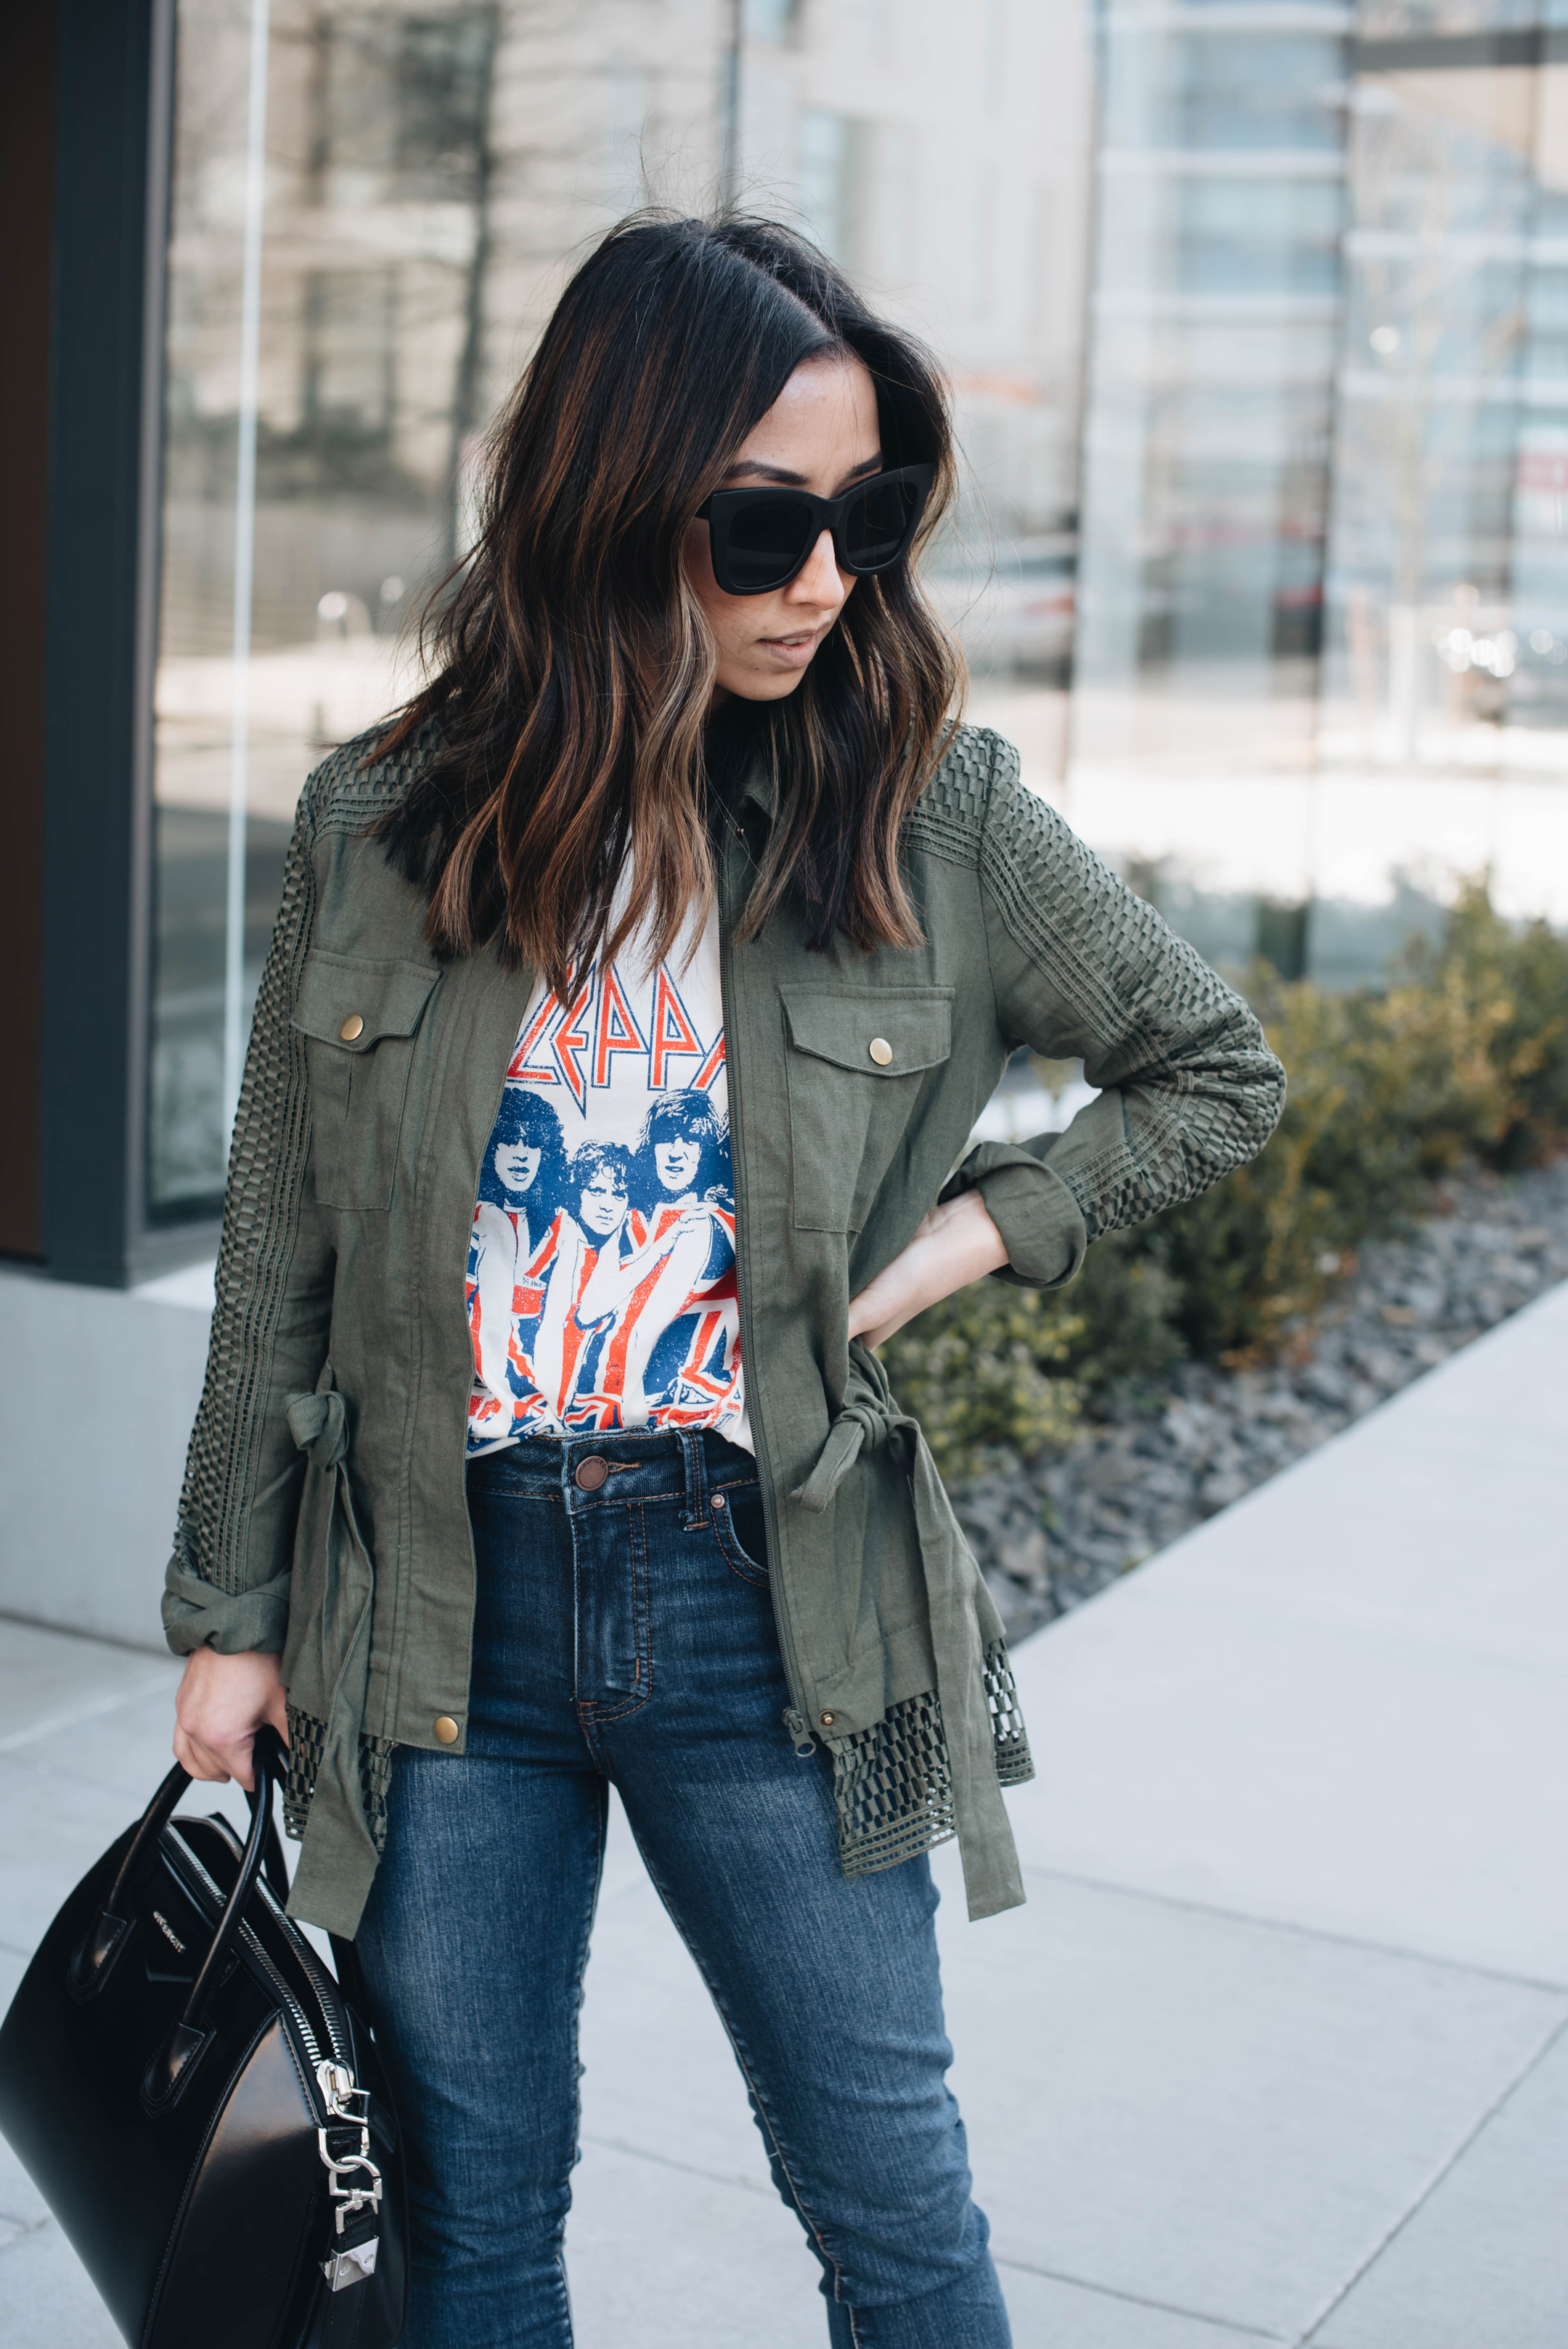 Spring Must Have Items: My Spring Must-Have